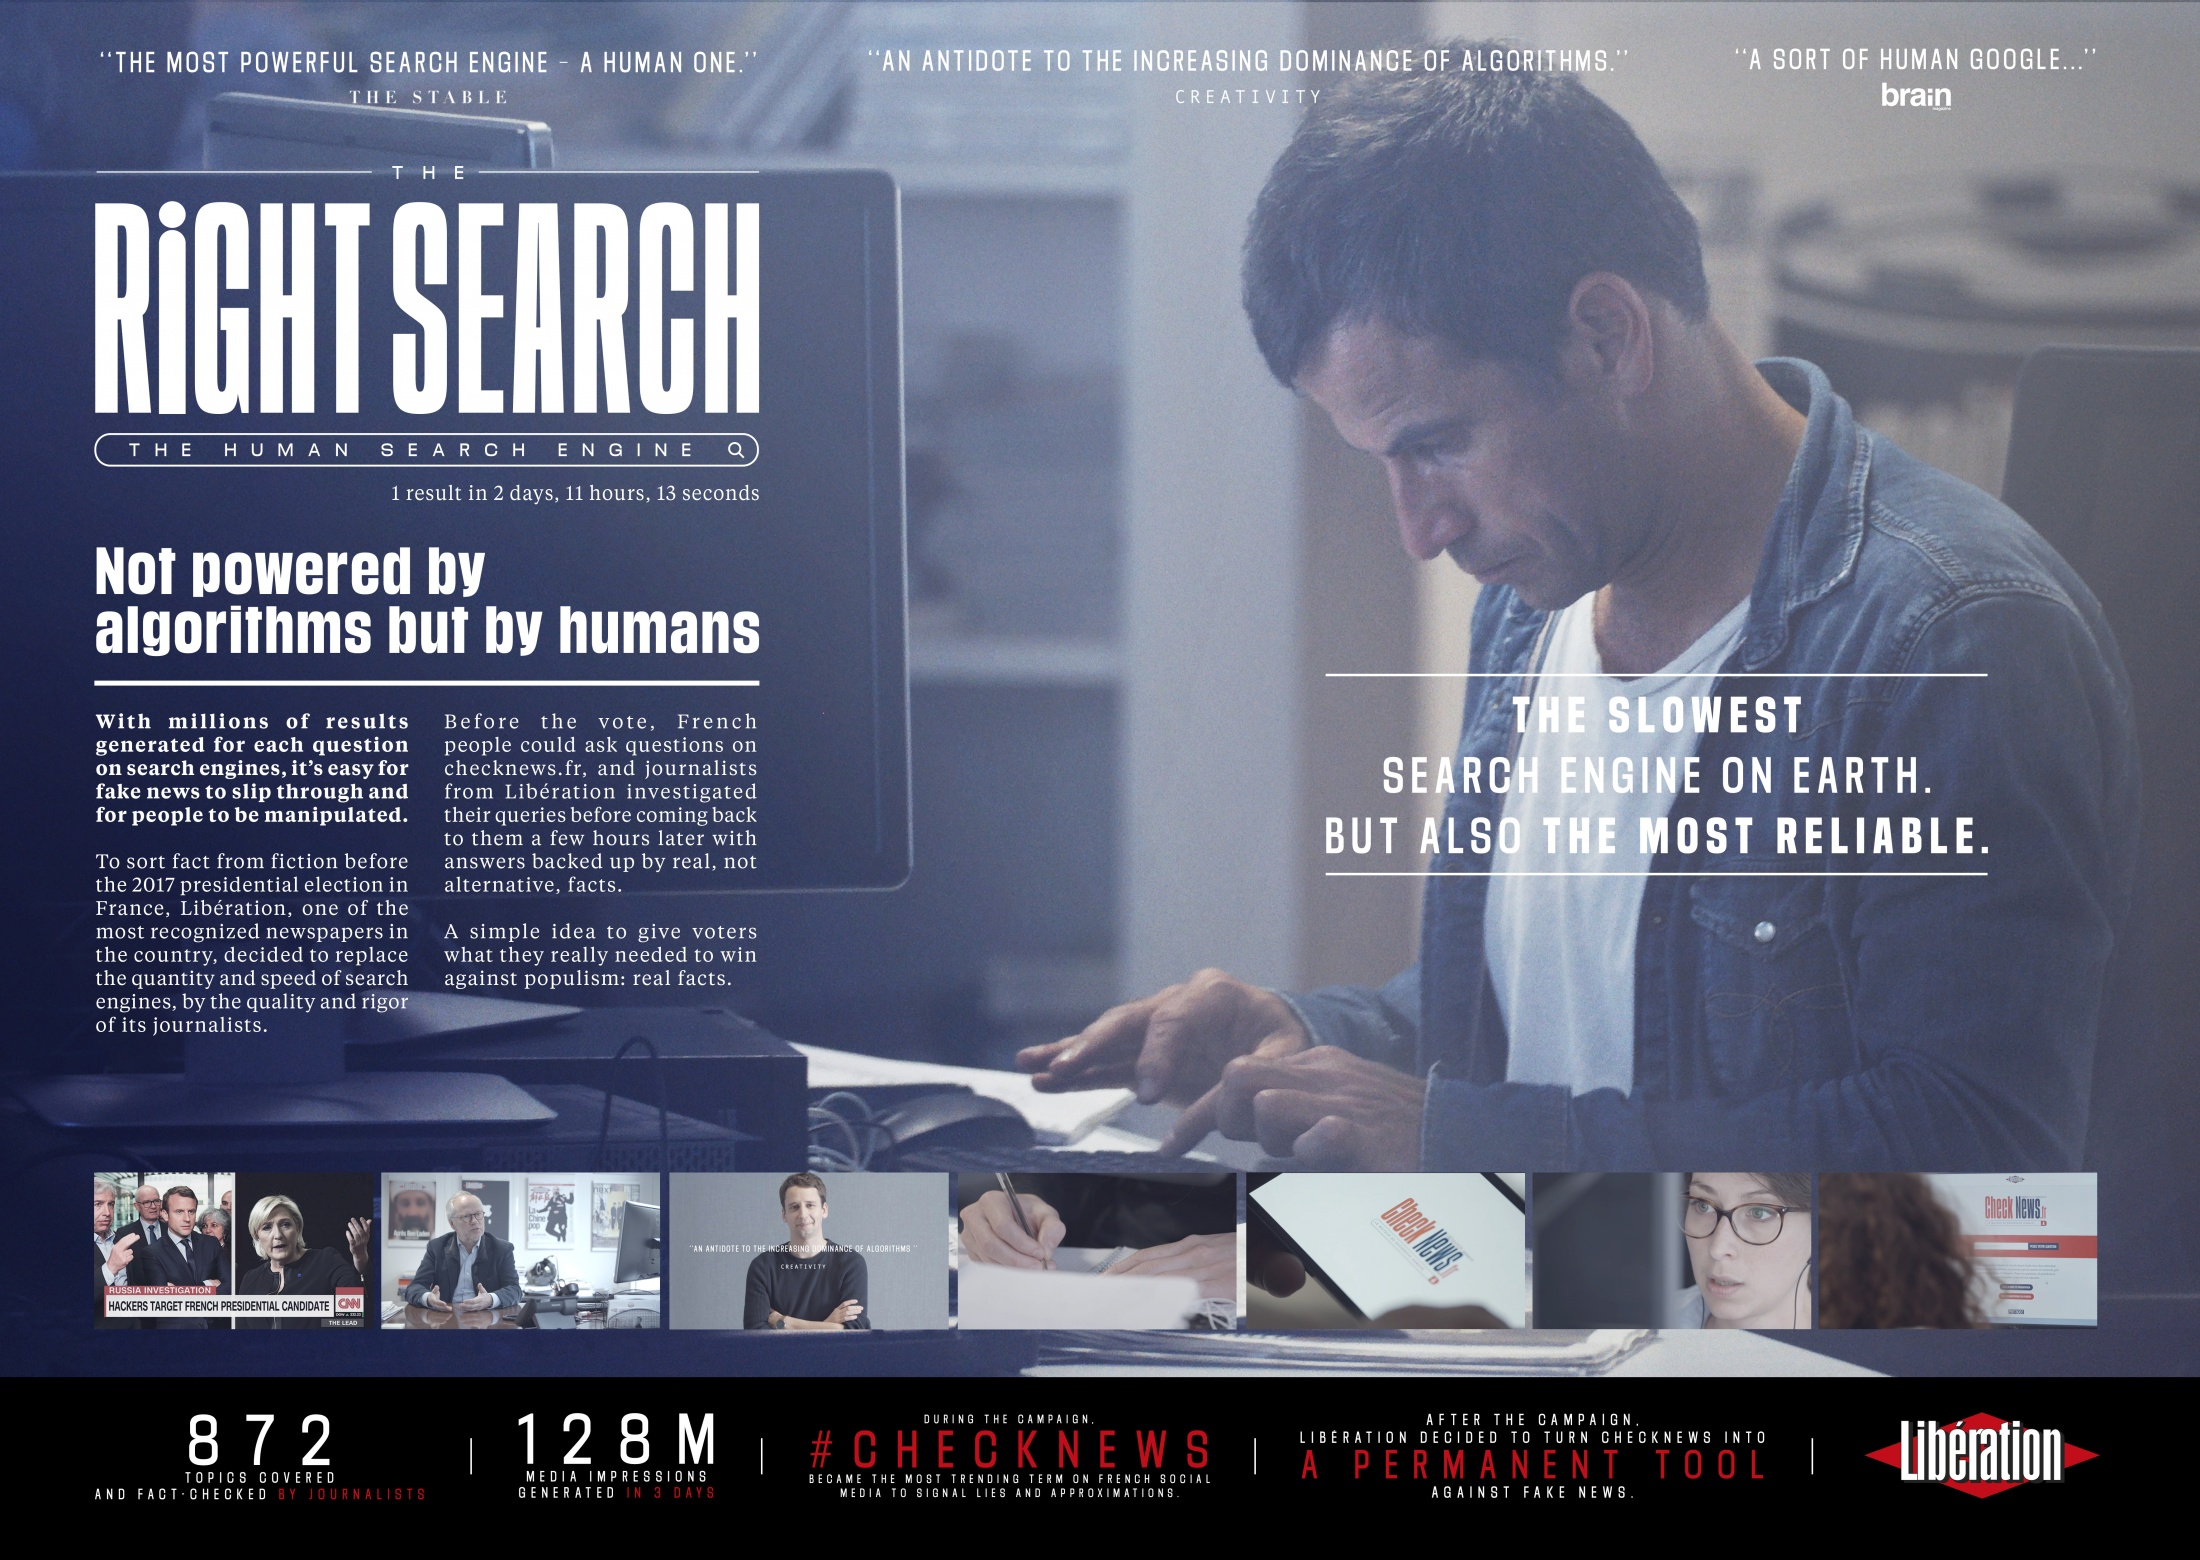 Thumbnail for The Right Search